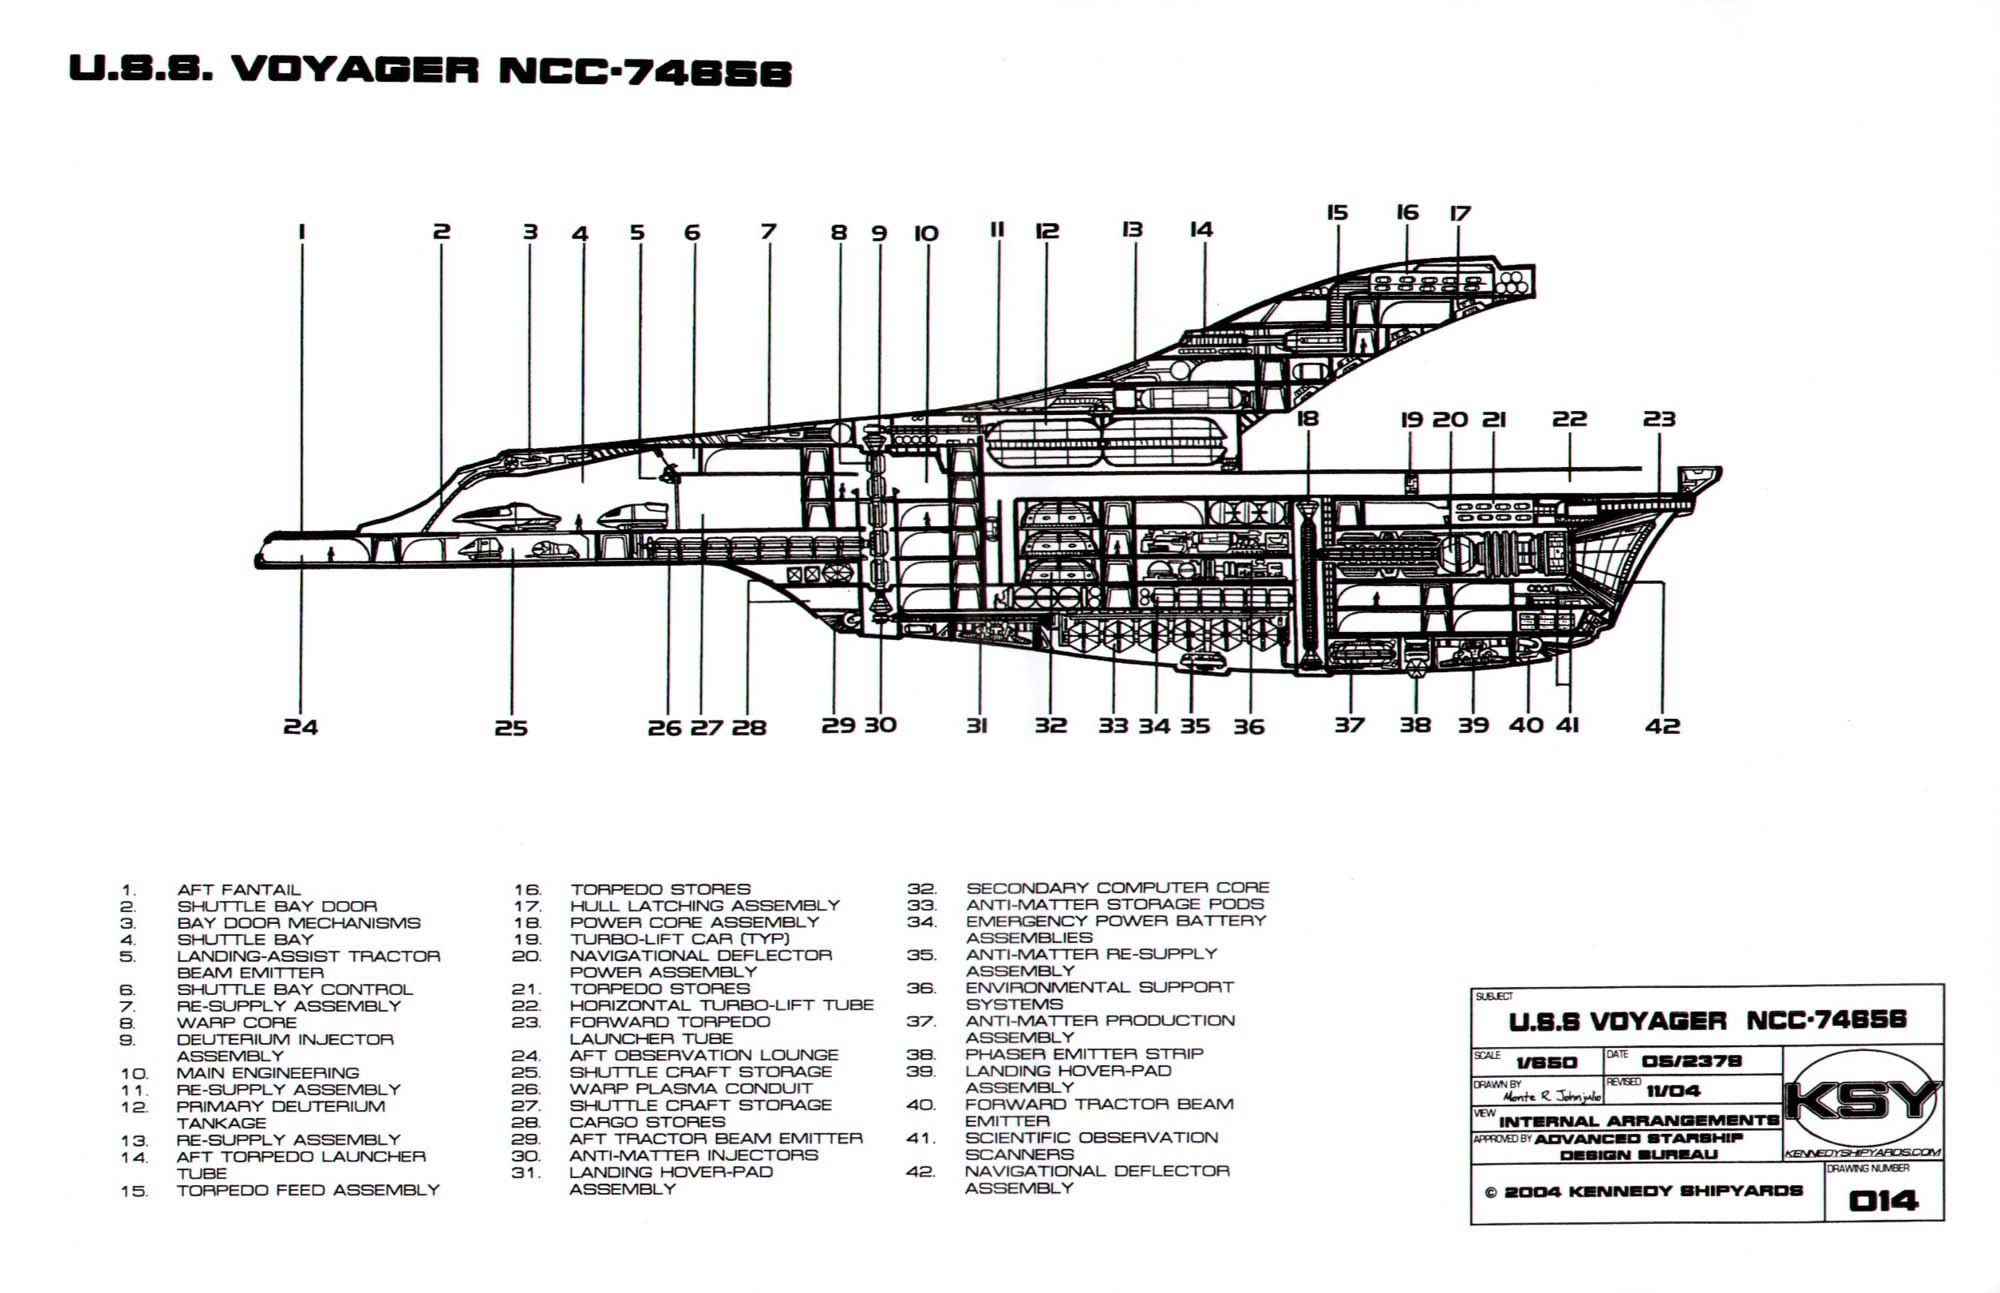 Star Trek Blueprints Intrepid Class Starship U S S